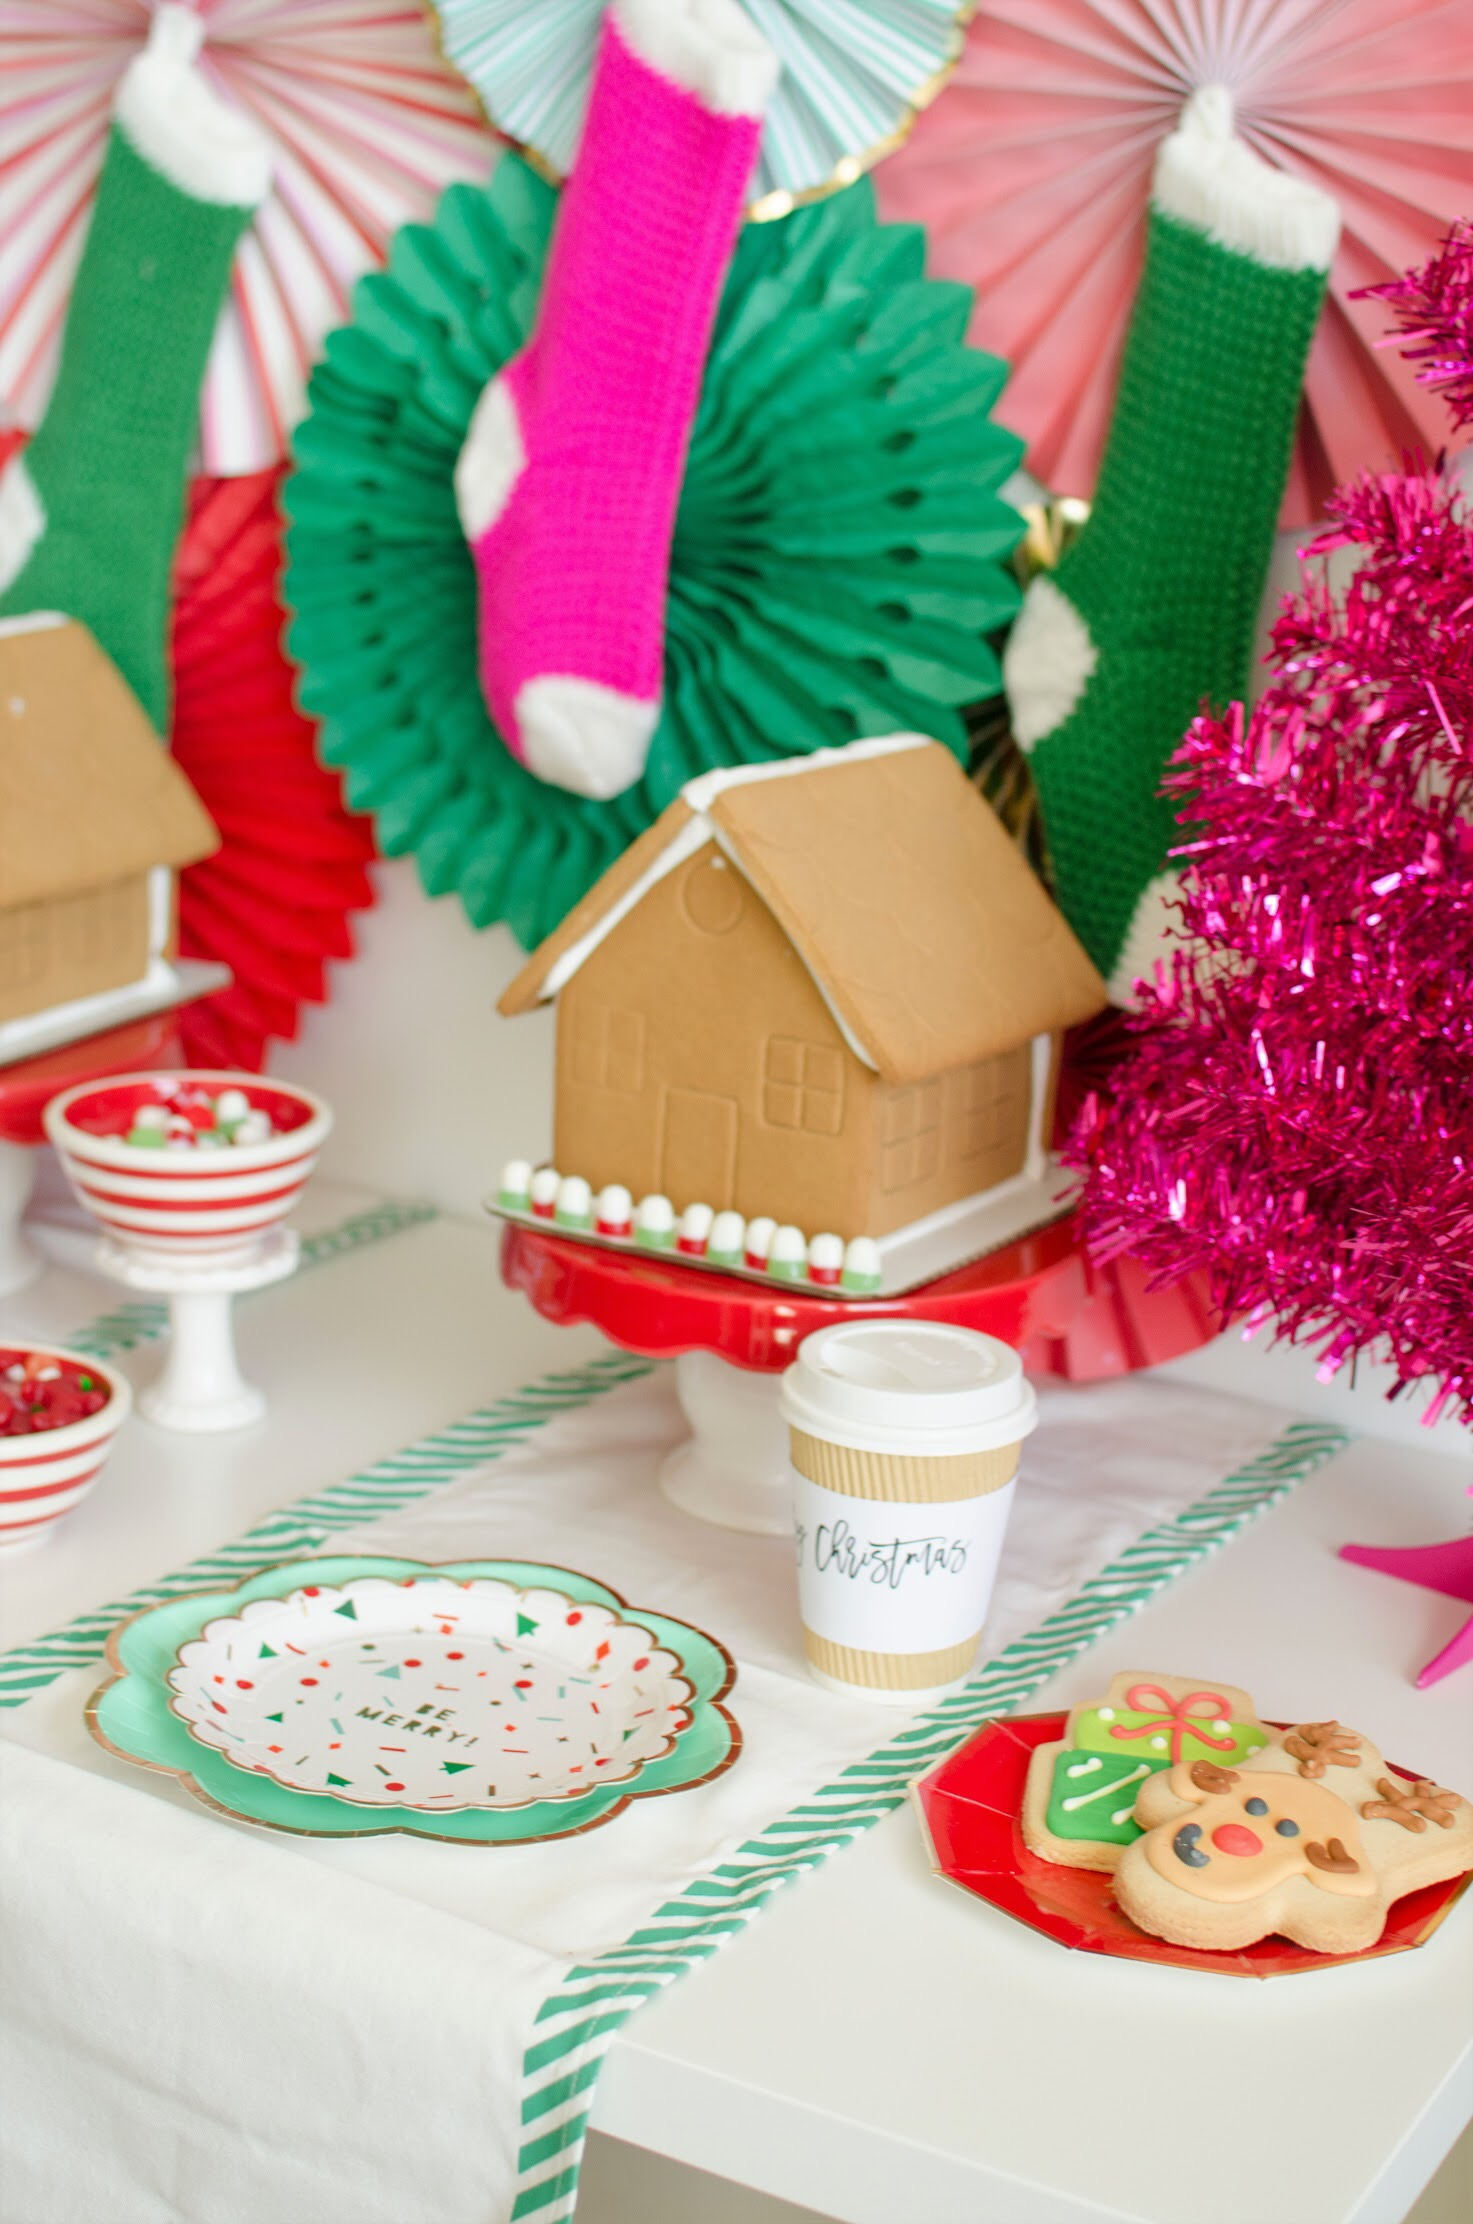 Sugar cookies and hot cocoa are on the menu at this gingerbread house decorating party. See the full decorating details and party set up design on Mint Event Design www.minteventdesign.com #gingerbreadhouse #holidayparty #holidays #partyideas #christmasparty #holidaypartyideas #kidsparty